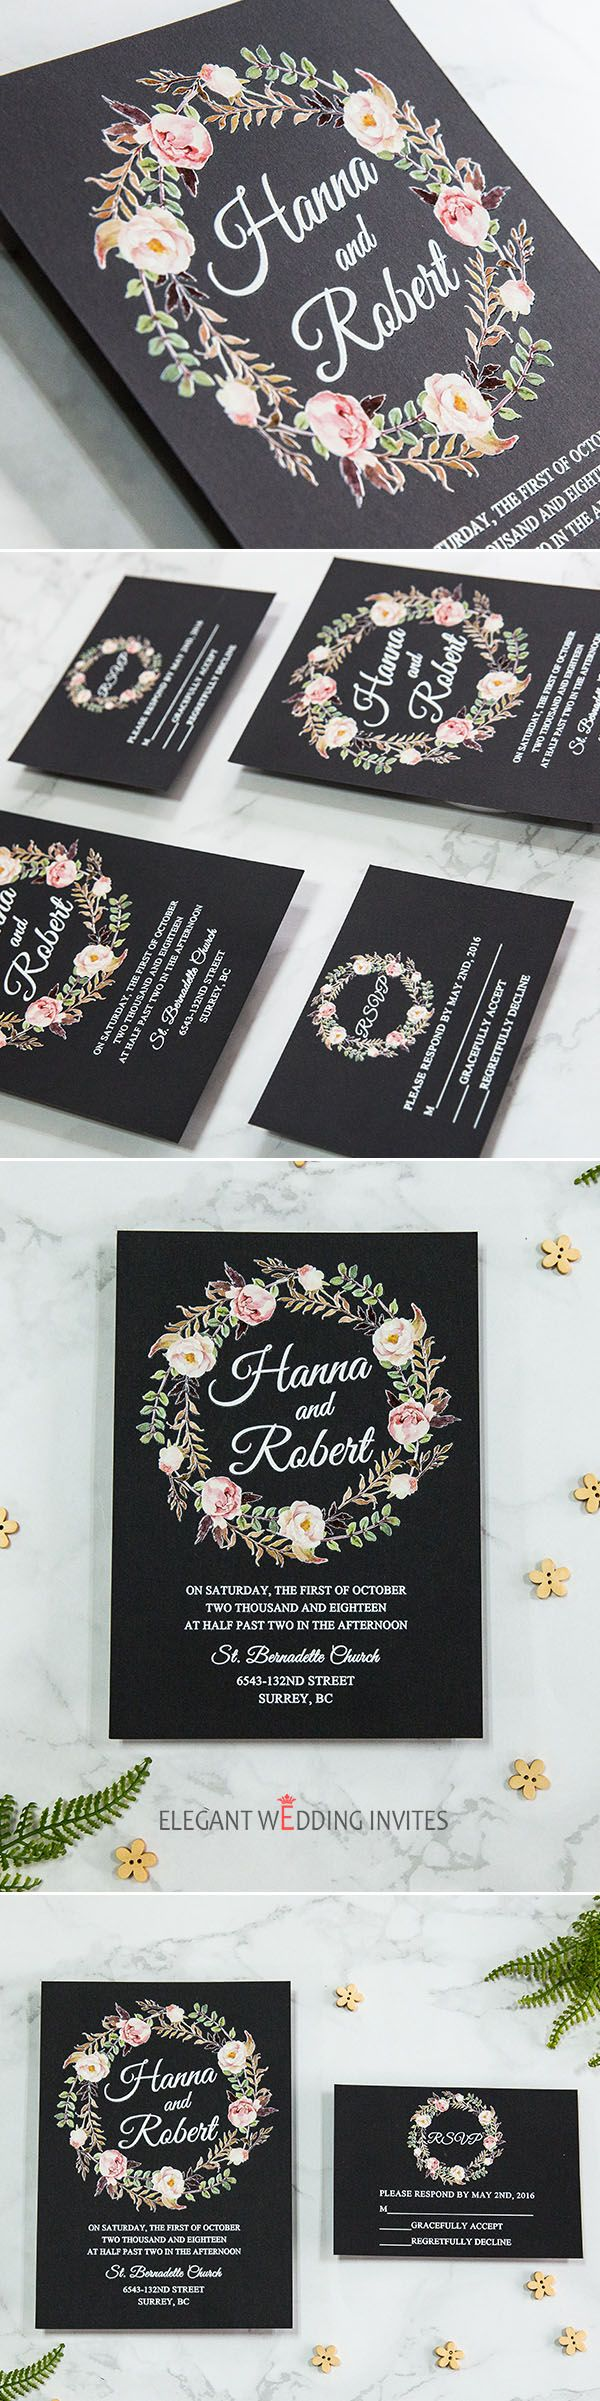 stunning rustic floral wreath UV printing wedding invitations ...